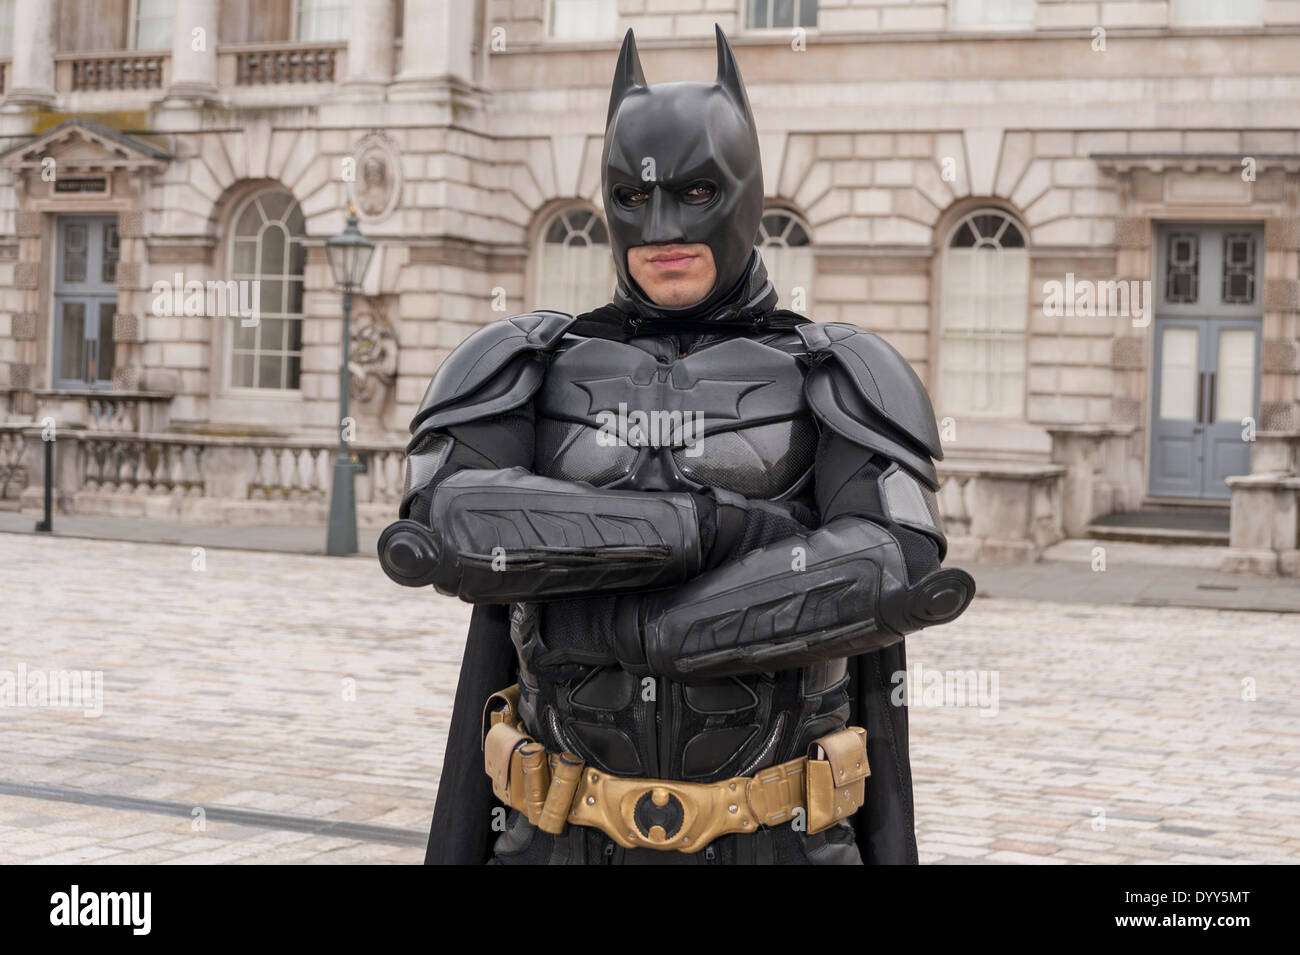 London, 27 April 2014 - people dressed as their favourite sci-fi characters take part in the Sci-Fi London 2014 costume parade starting at Somerset House and finishing at the BFI on the South Bank.  A man dressed as the character, Batman.      Credit:  Stephen Chung/Alamy Live News - Stock Image